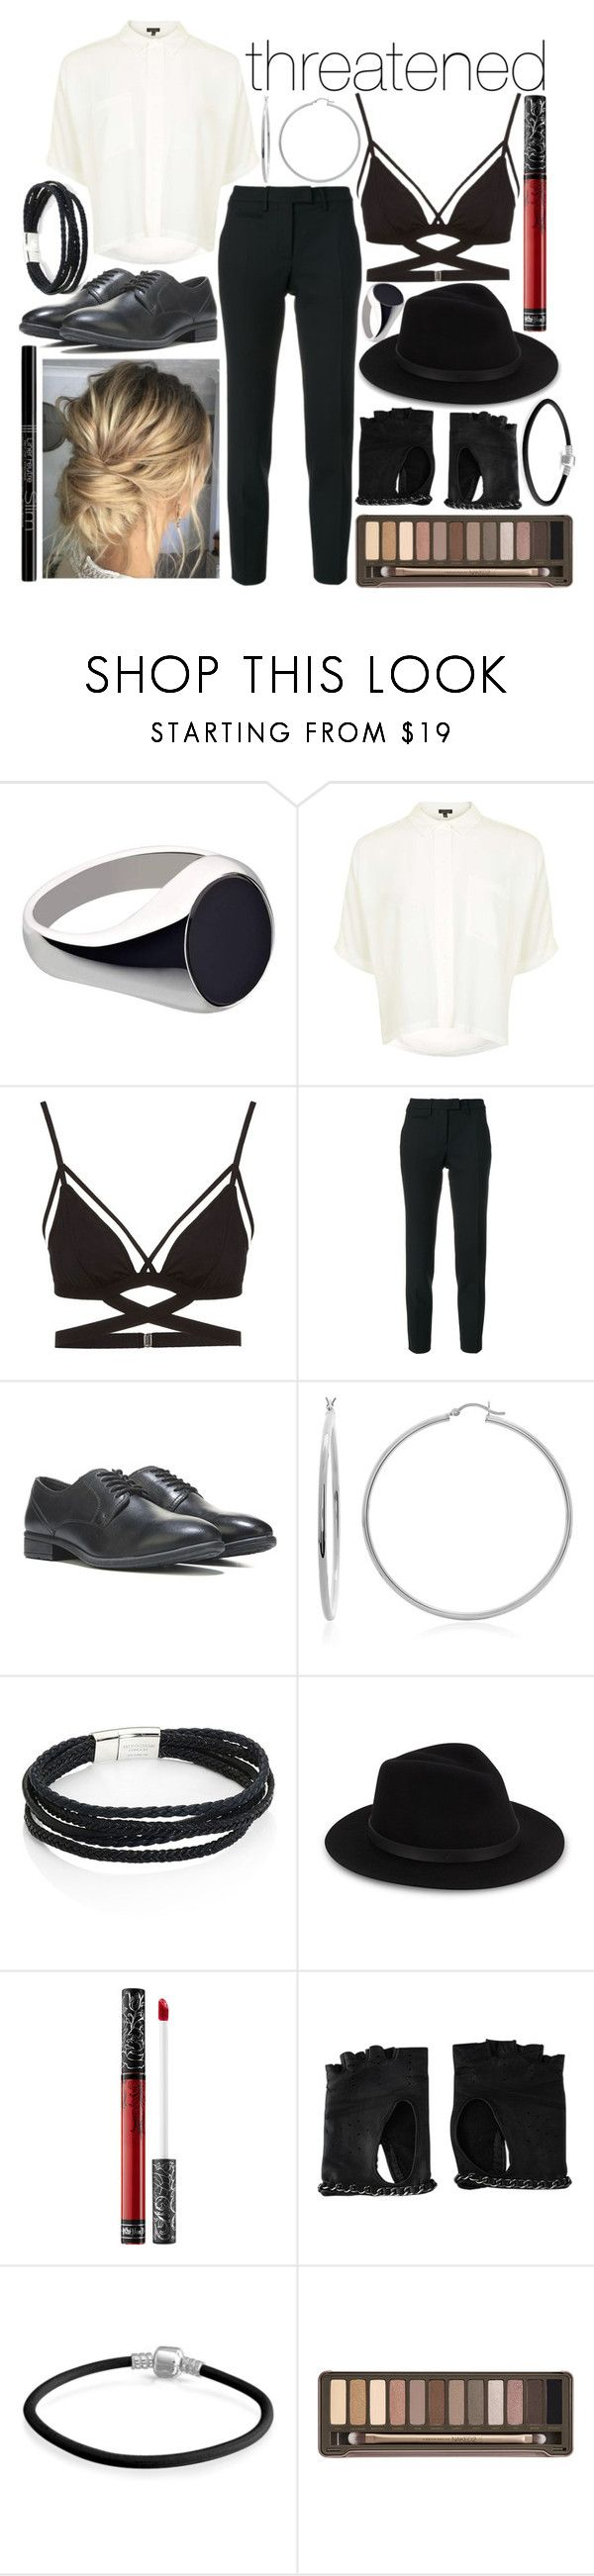 """""""Threatened"""" by leonorgomes on Polyvore featuring RenéSim, Topshop, Cosabella, Incotex, Sterling Essentials, Bourjois, Tateossian, Saks Fifth Avenue, Kat Von D and Chanel"""